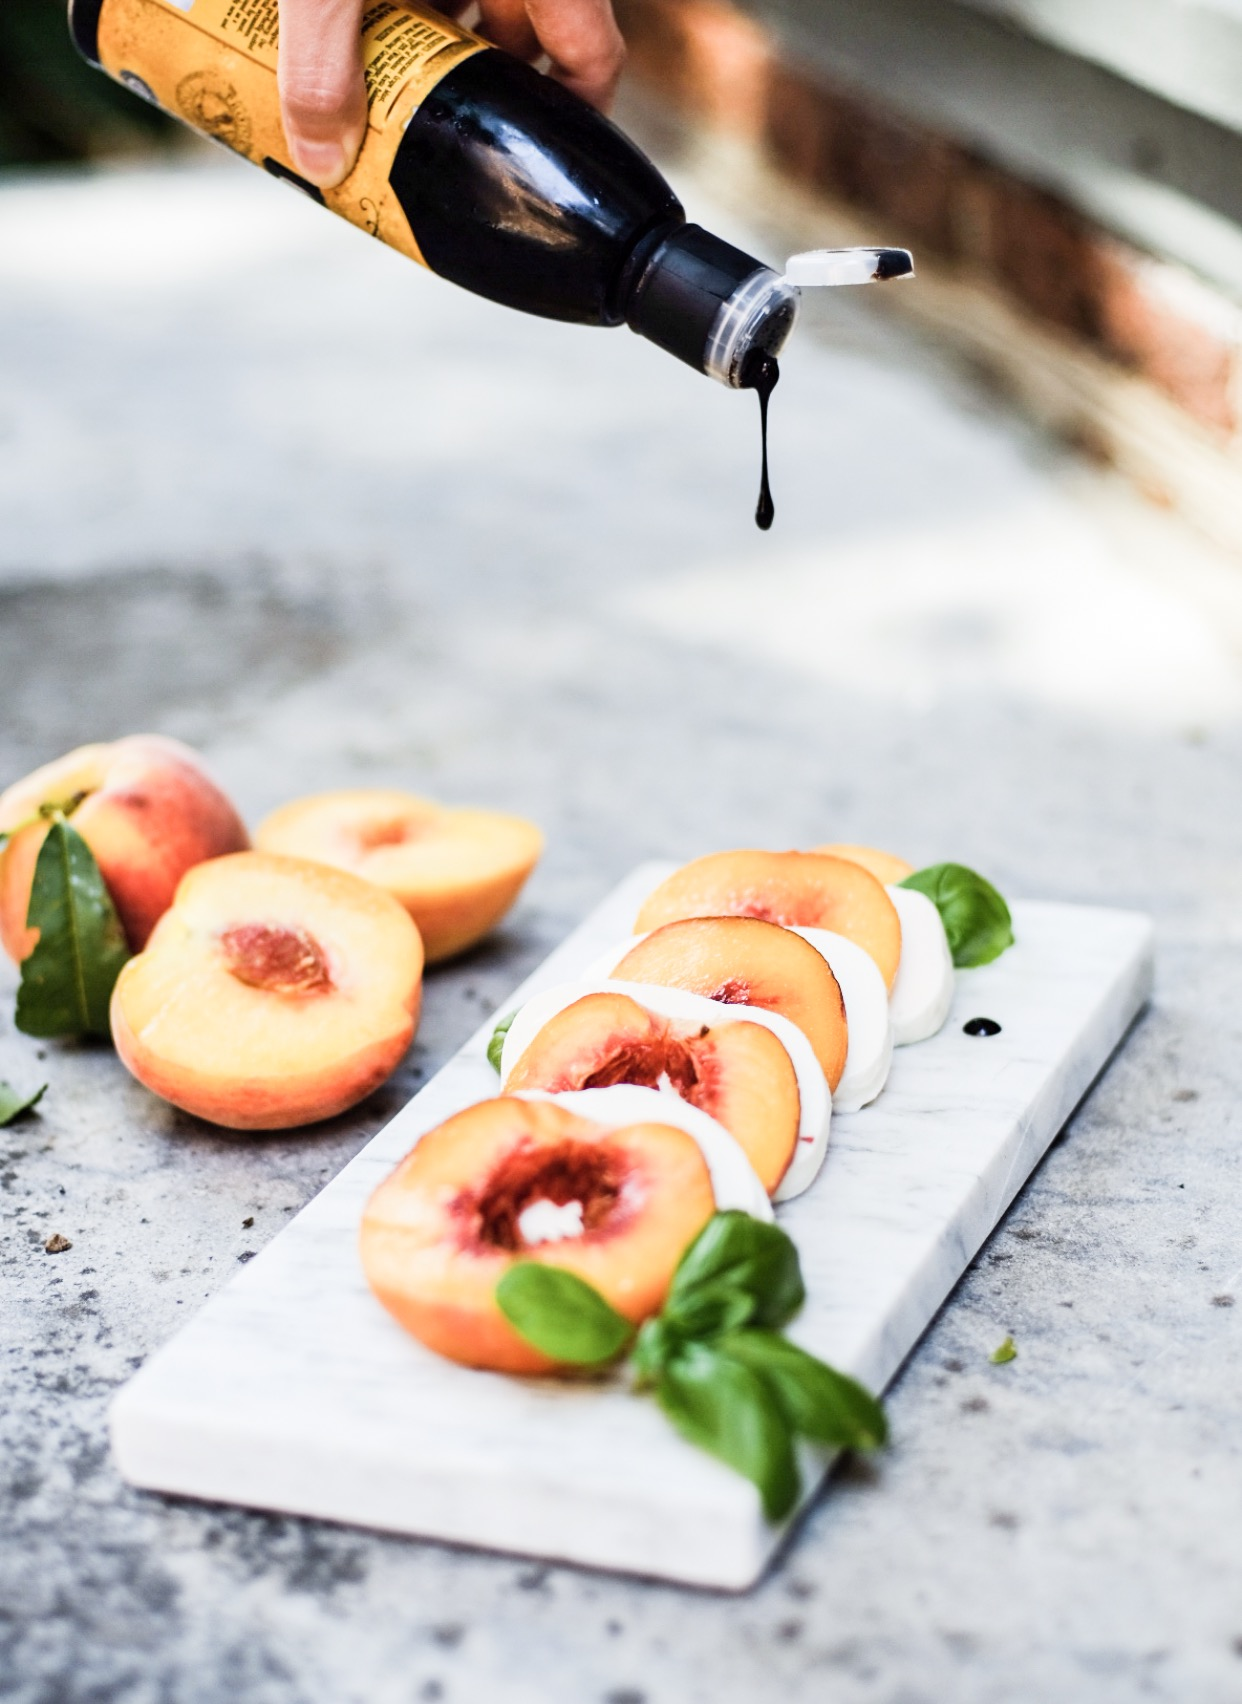 Lifestyle Blogger Chocolate and Lace shares her recipe for Peach Caprese Salad